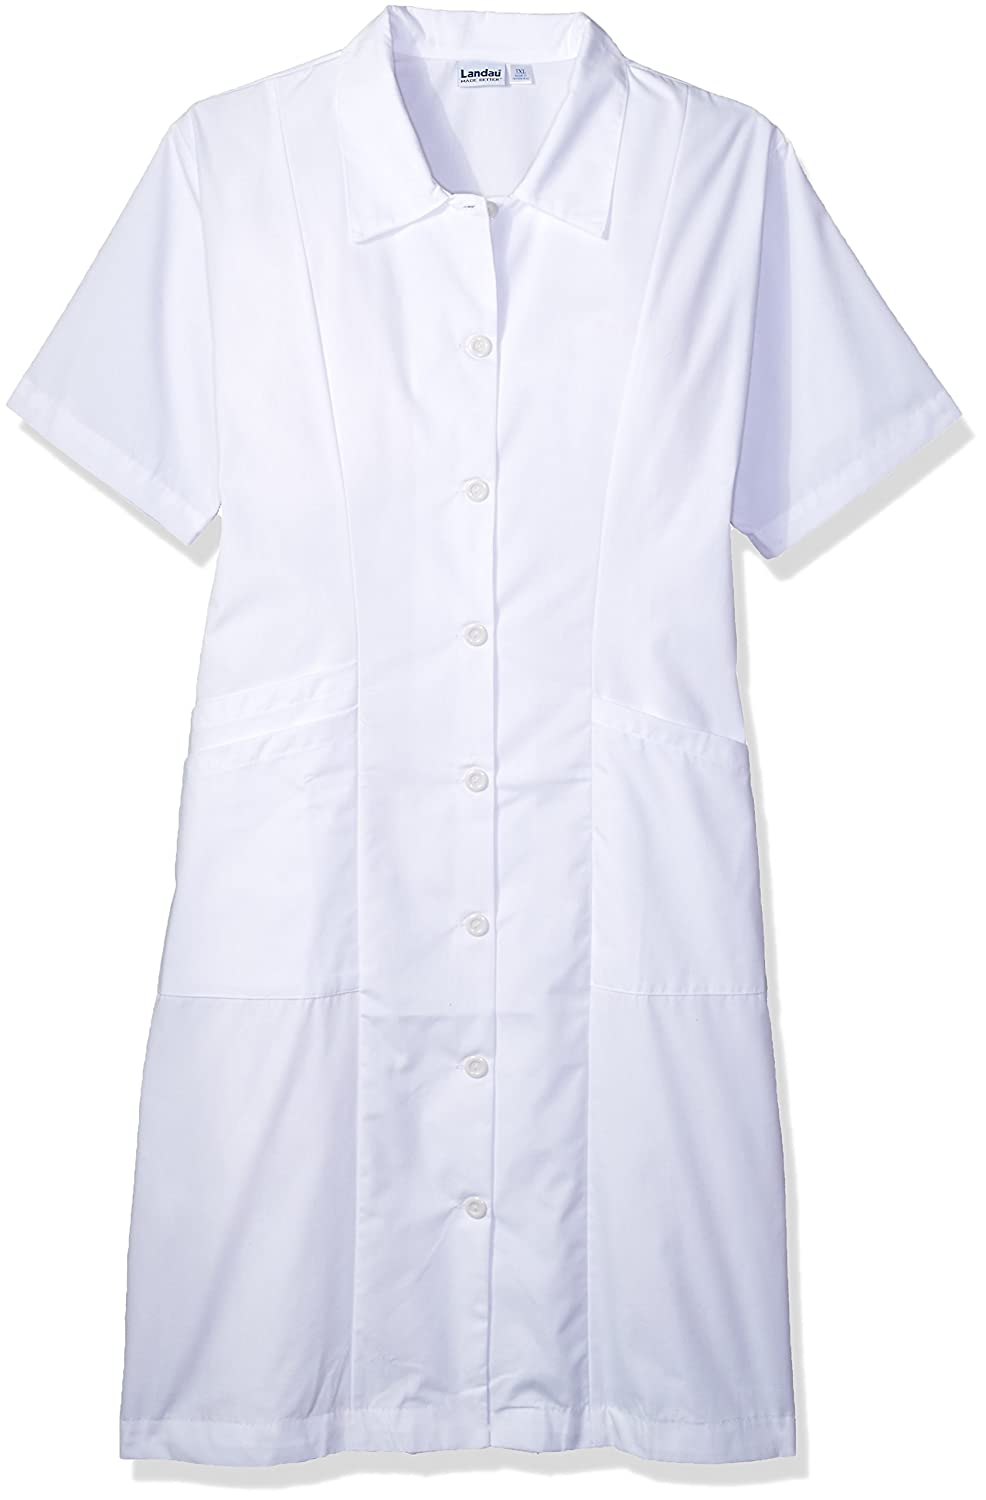 Landau Women's Short Sleeve Student Nursing Scrub Dress